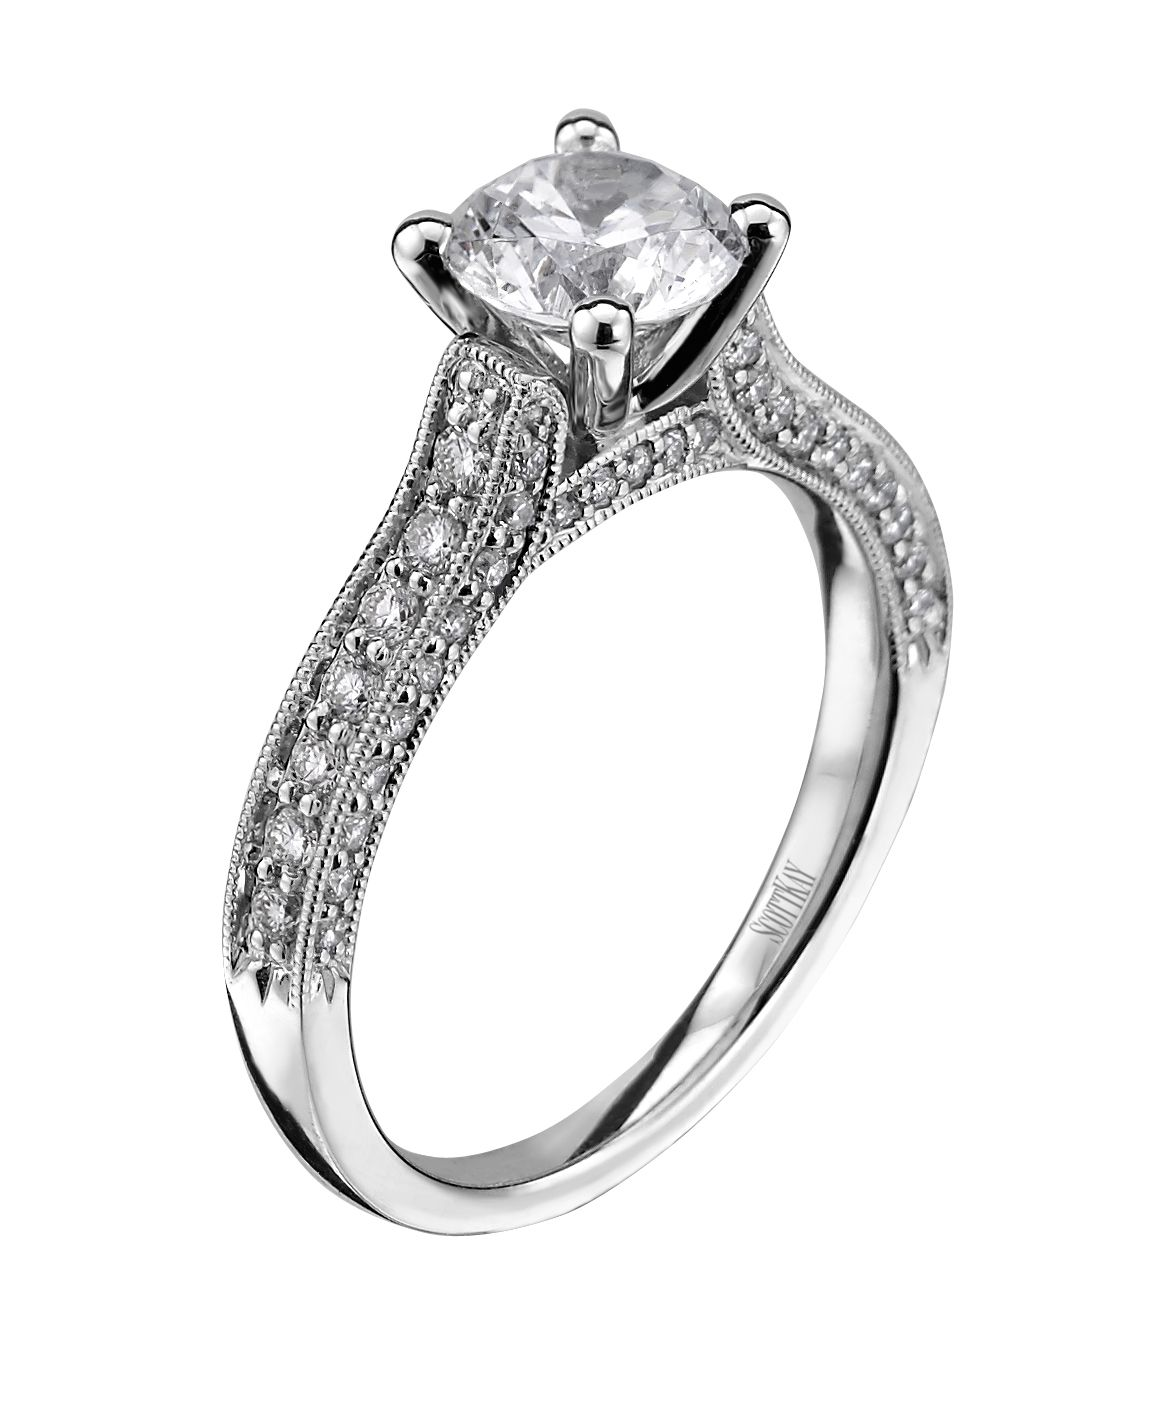 Sweet Scott Kay Ring my ring except with pear shape diamond in the middle